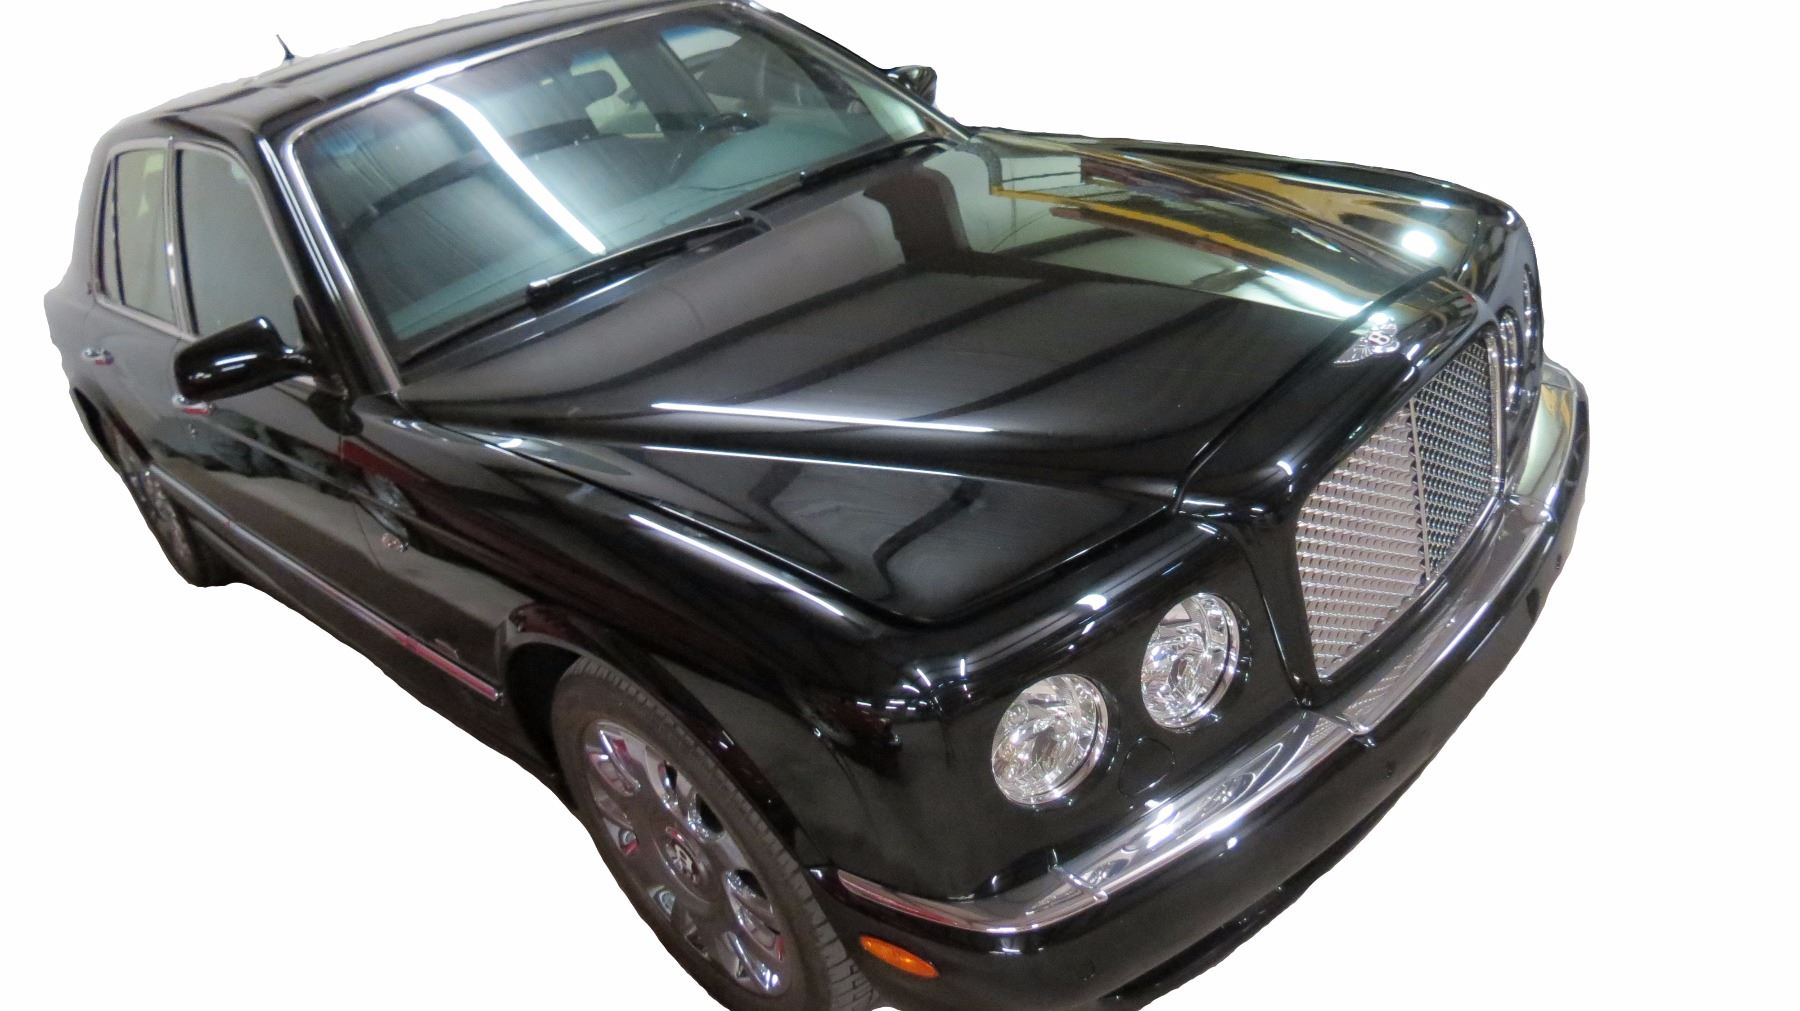 Video; Video; Image 1  2005 Bentley Arnage Red Label/R Mulliner Sedan 4 Door; 6.75 ...  sc 1 st  iCollector.com & 2005 Bentley Arnage Red Label/R Mulliner Sedan 4 Door; 6.75 Twin ...